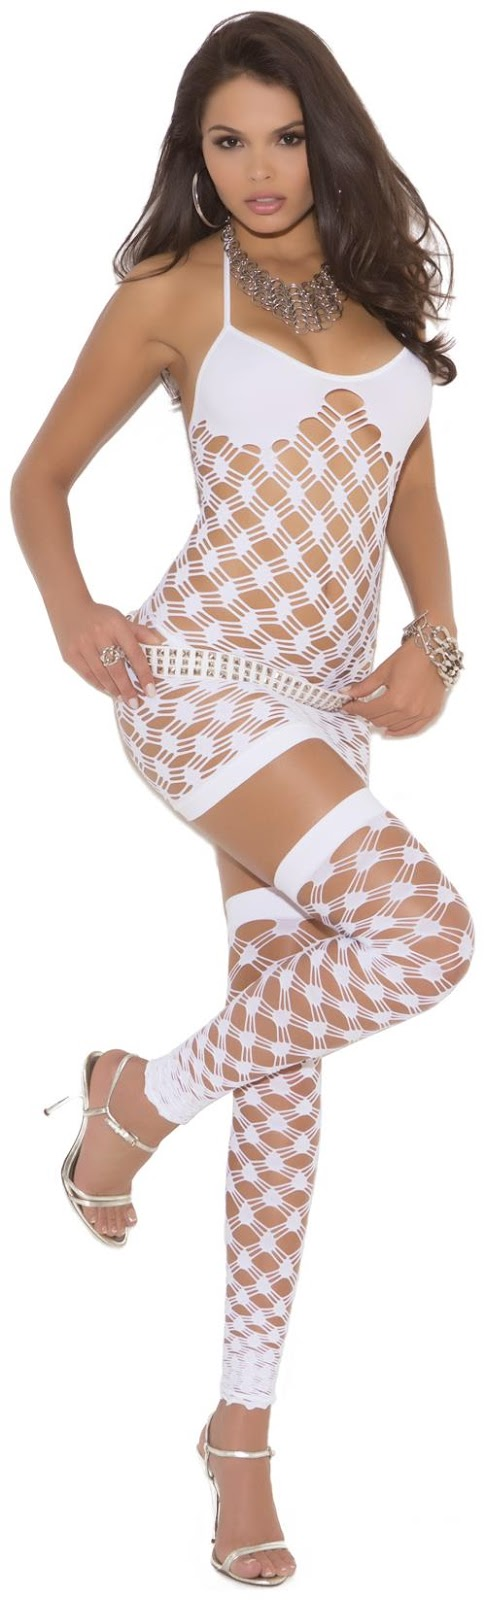 Diamond Net Mini Dress with G-String and Thigh Highs